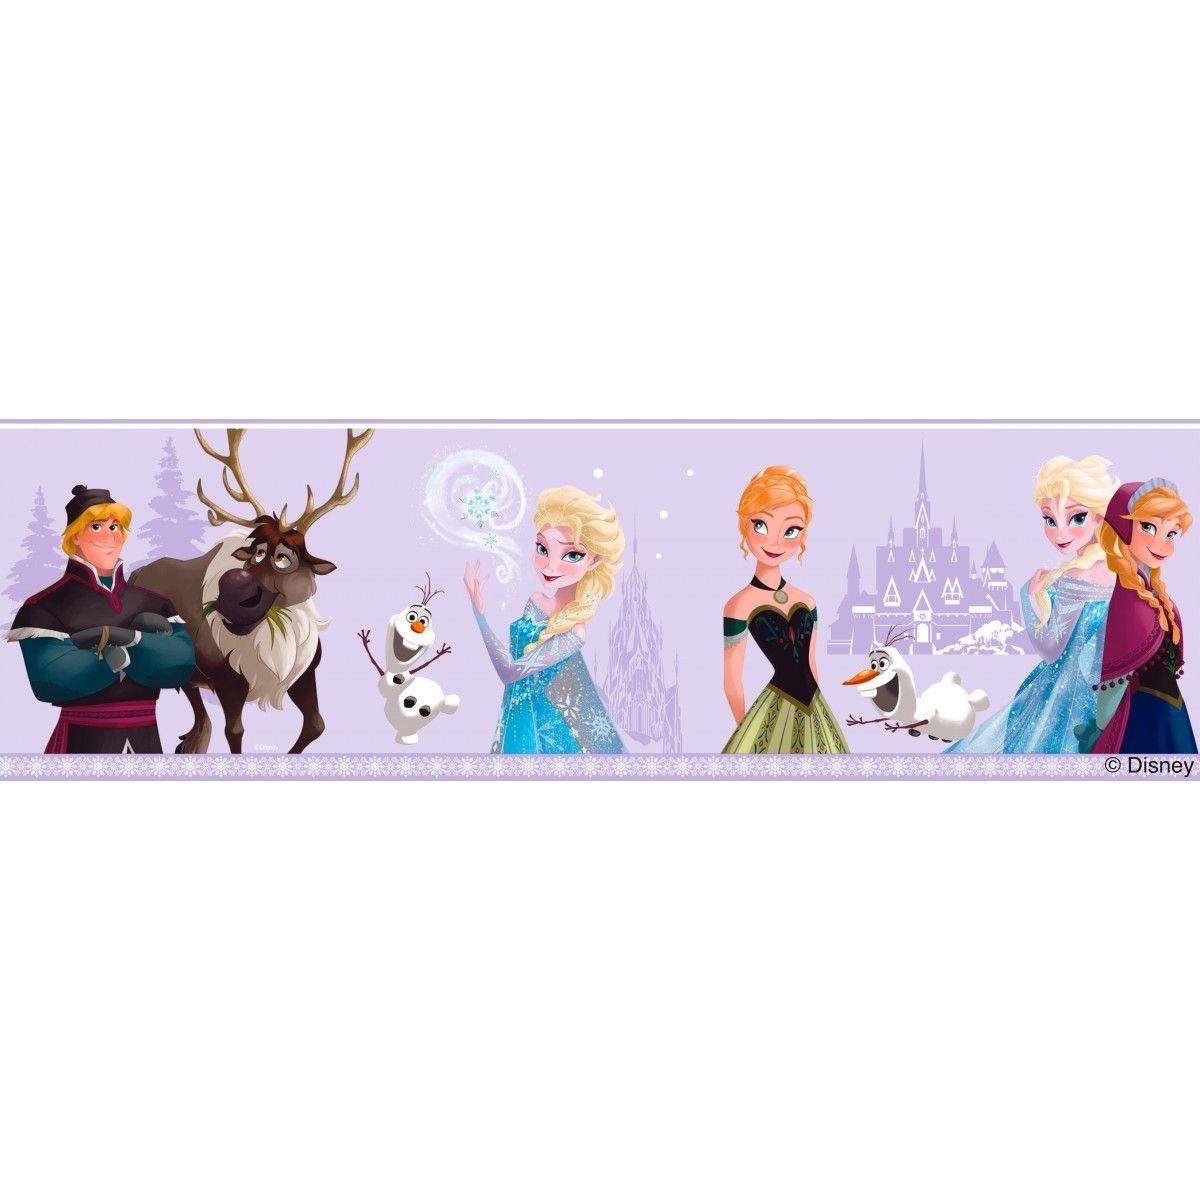 Disney Frozen Self Adhesive Wallpaper Border Lilac Fr3503 3 With Images Pink Wallpaper Border Frozen Wallpaper Disney Wallpaper